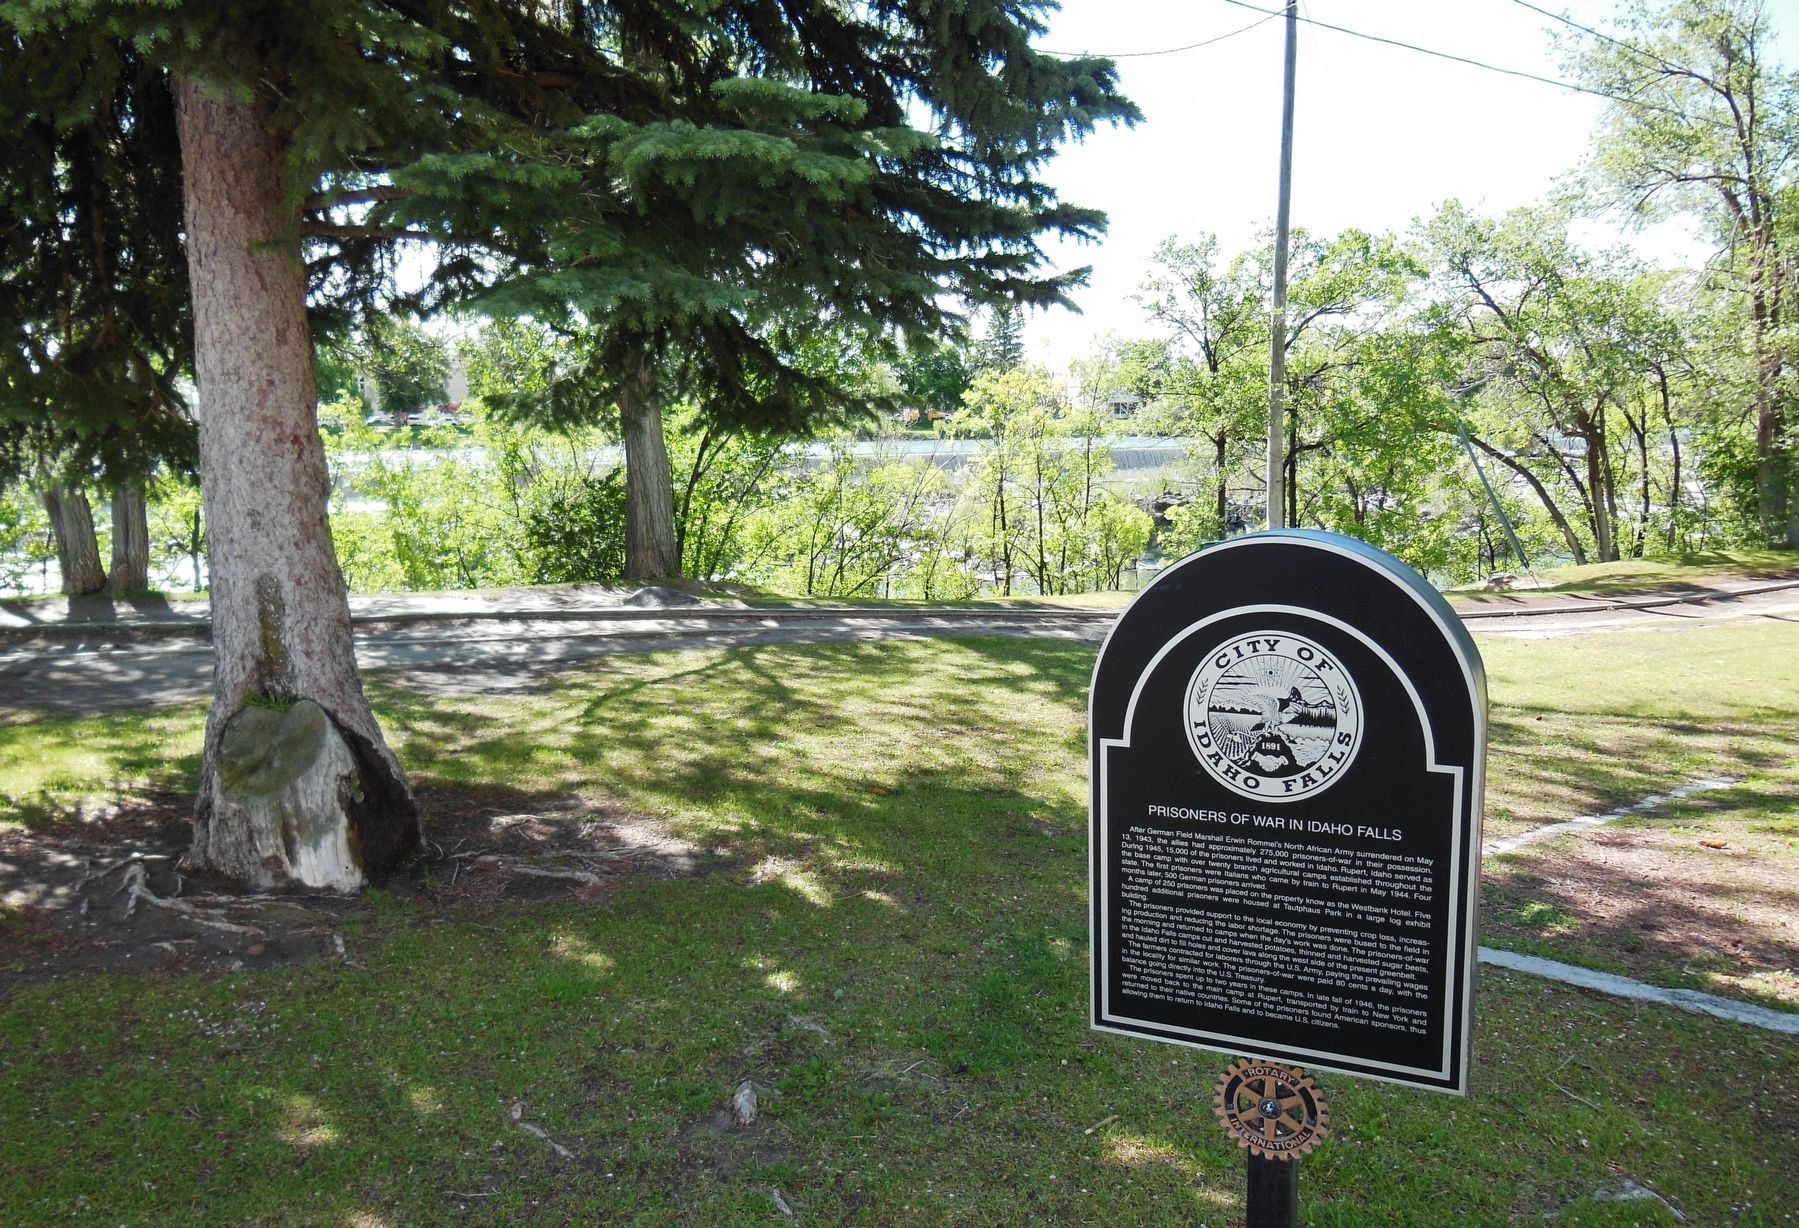 Prisoners of War in Idaho Falls Marker (<i>wide view showing adjacent riverwalk</i>) image. Click for full size.